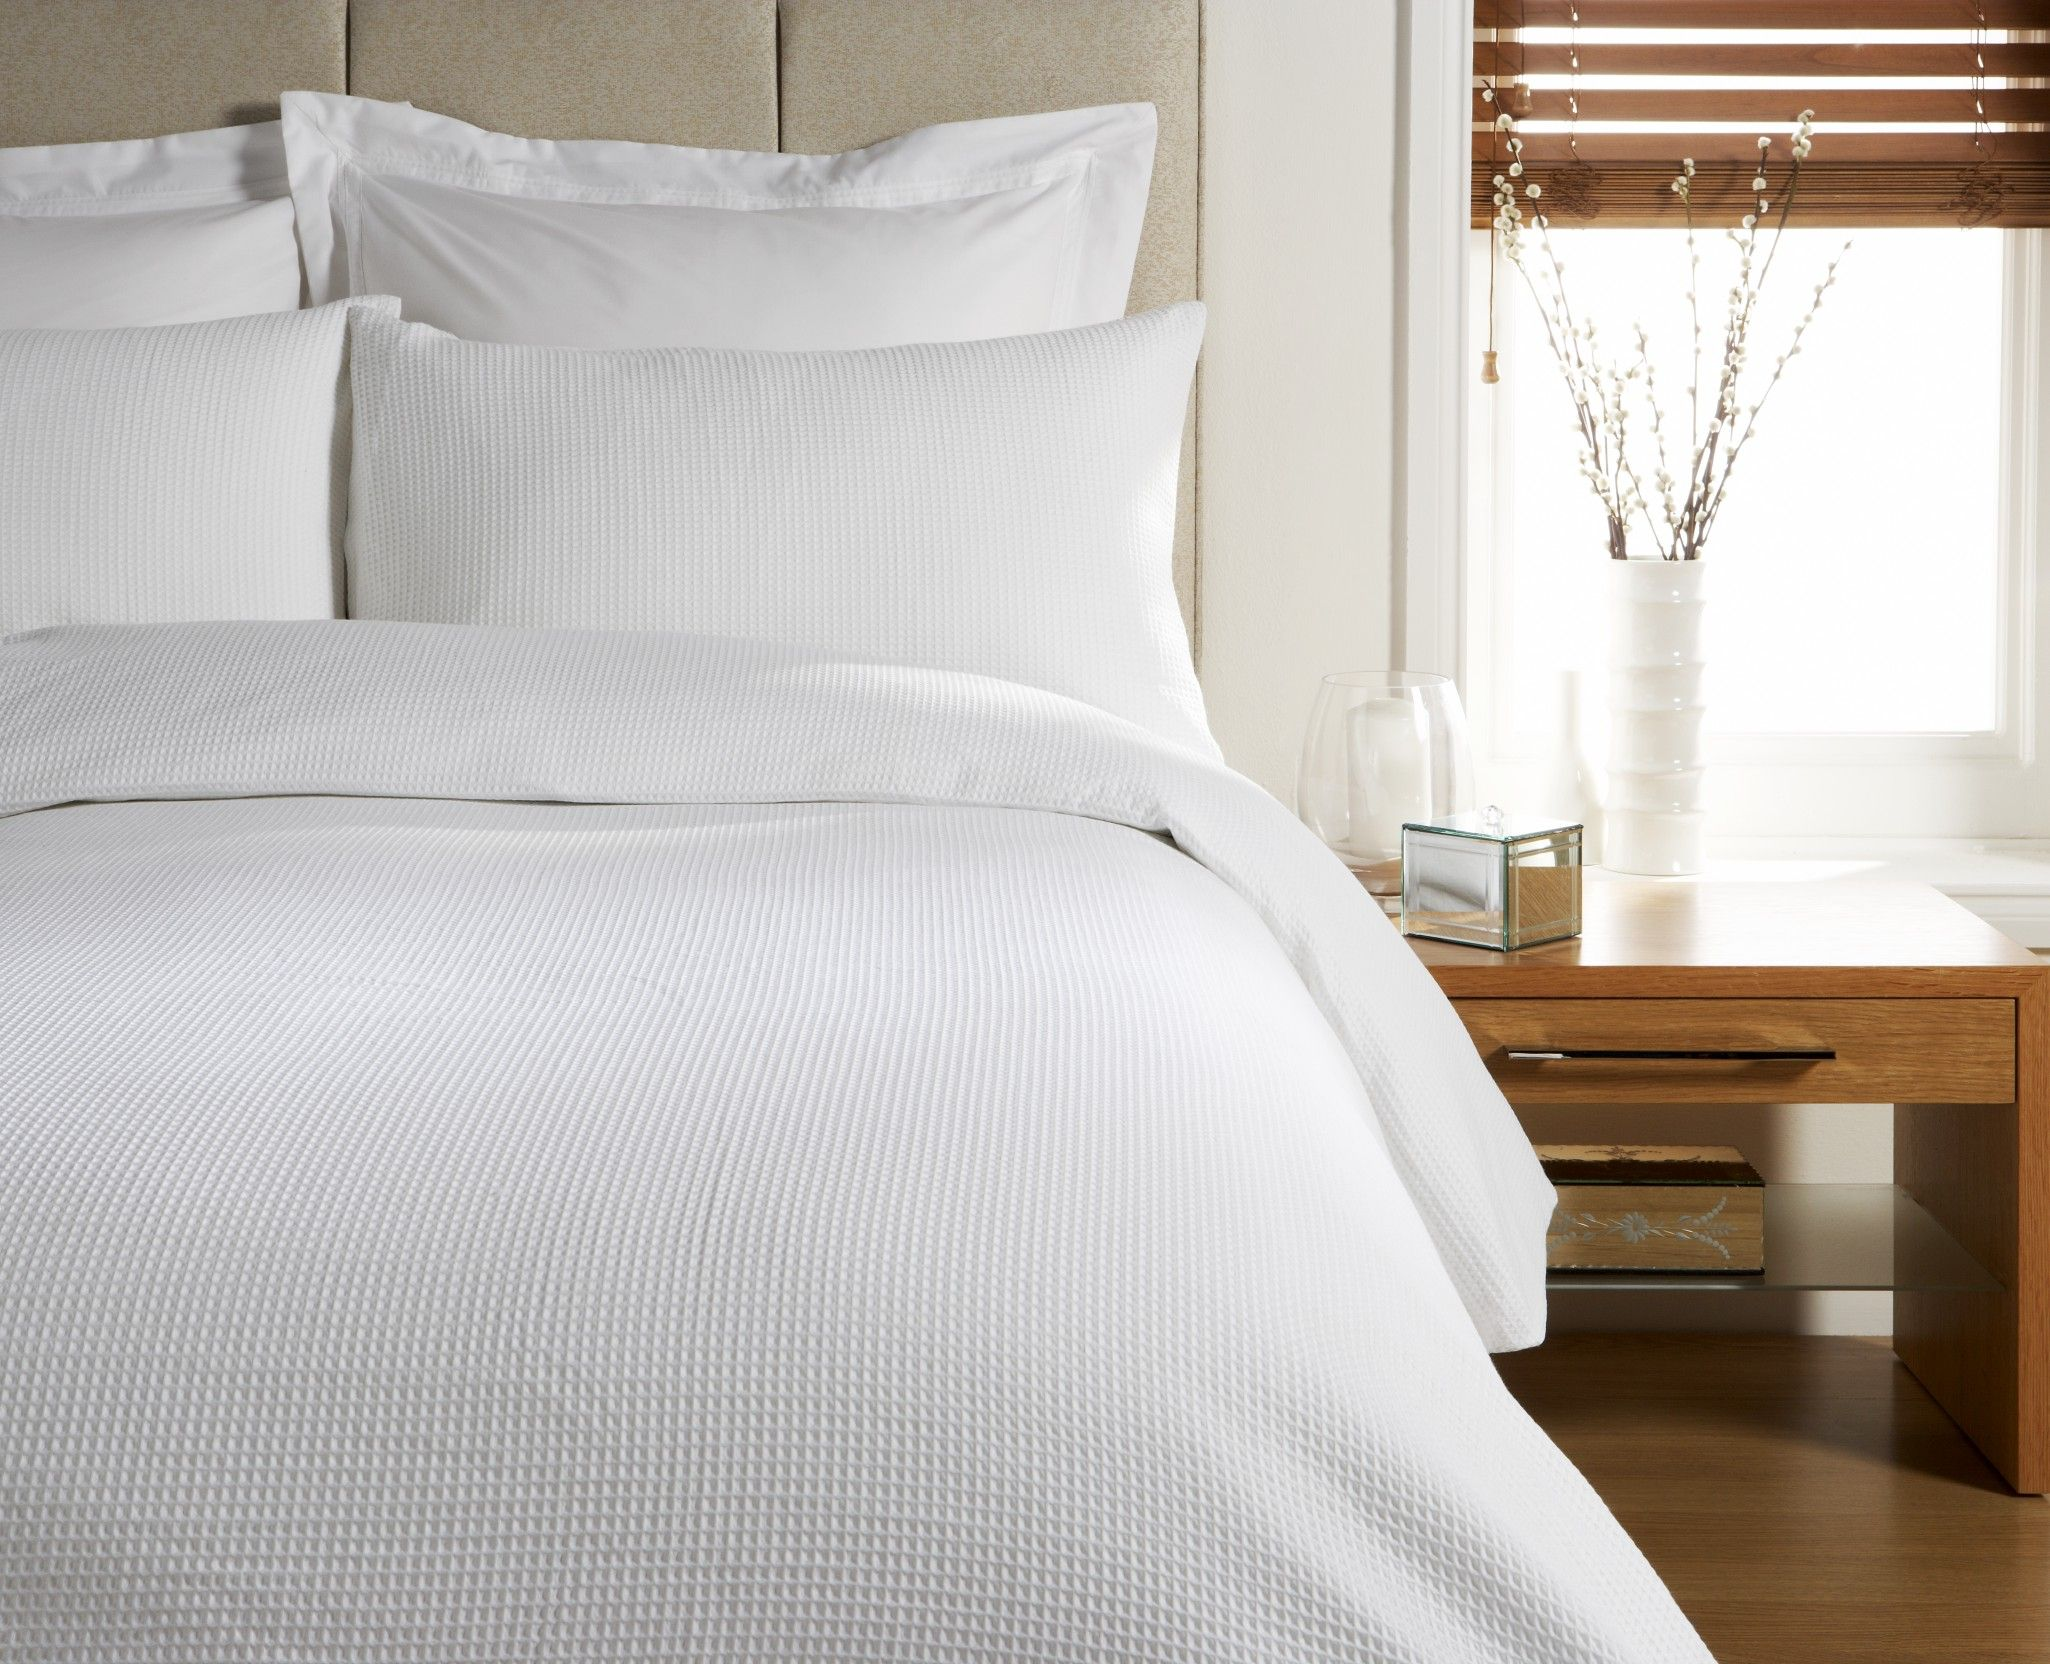 White Duvet Cover King White Bedding Waffle White Duvet Cover Super King Bed